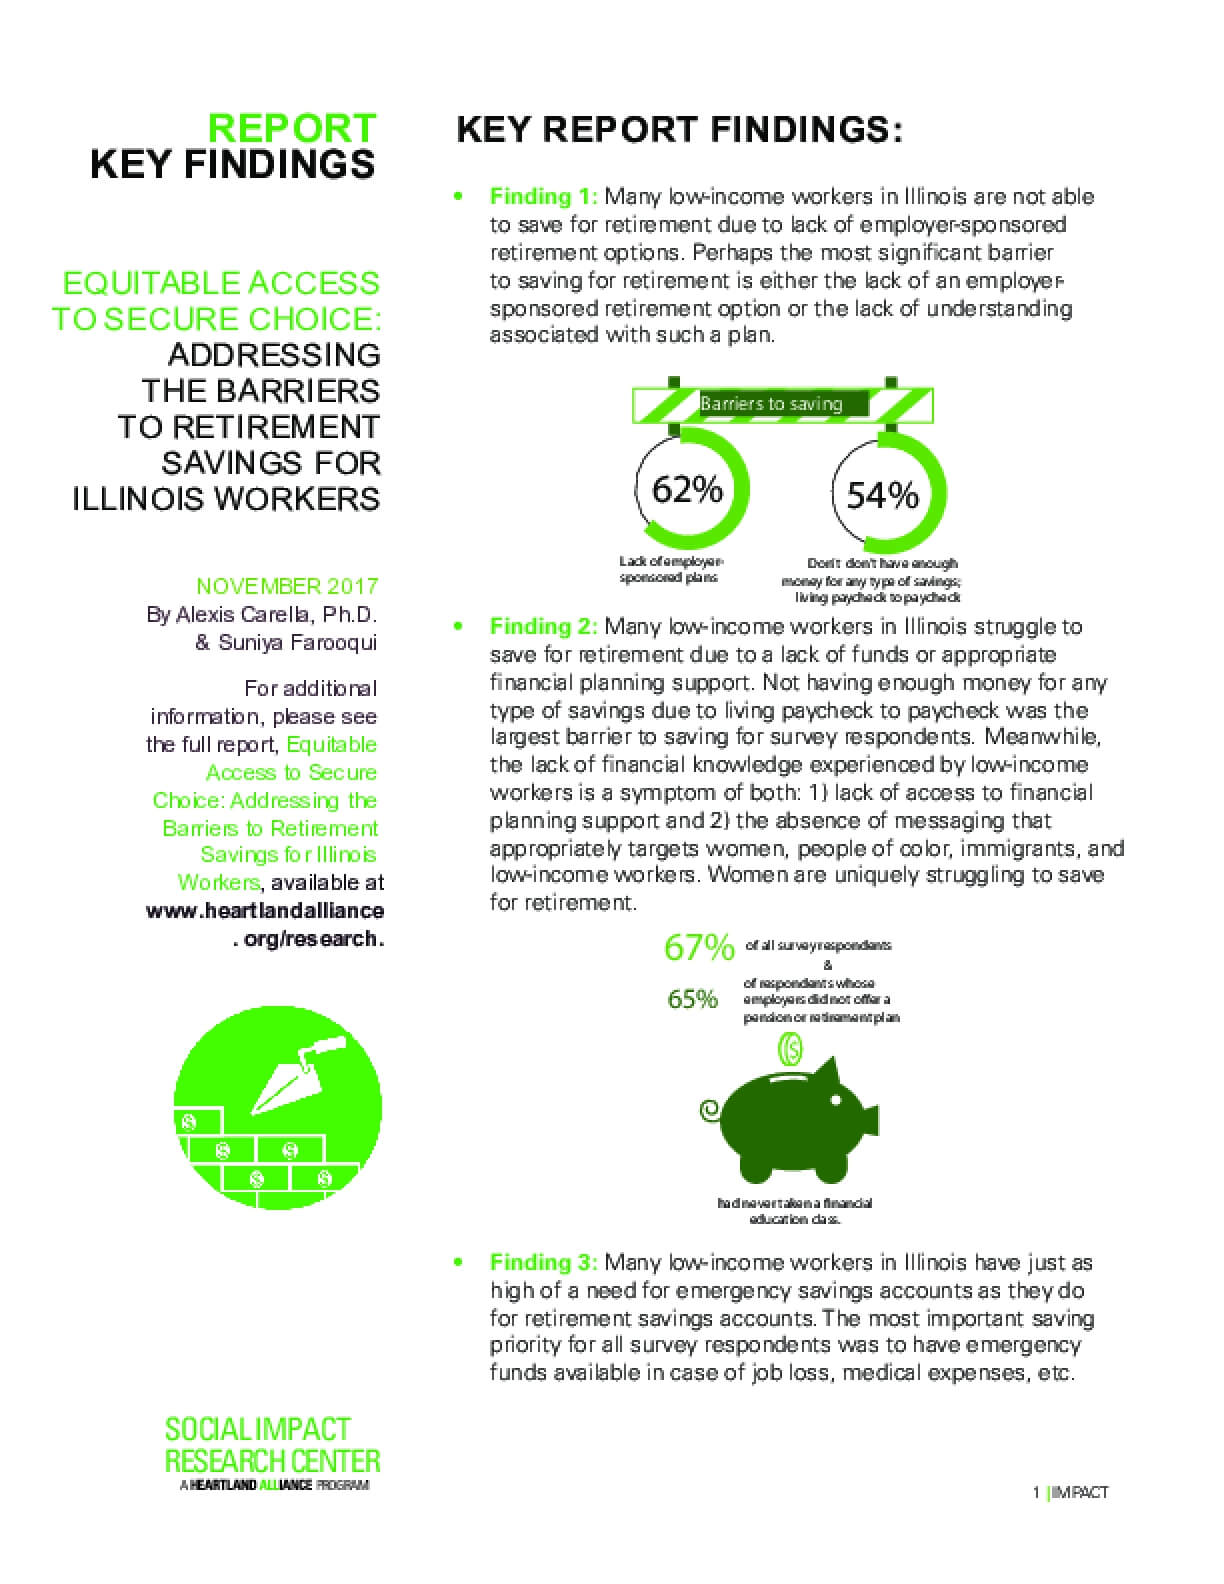 Key Findings: Equitable Access to Secure Choice - Addressing the Barriers to Retirement Savings for Illinois Workers